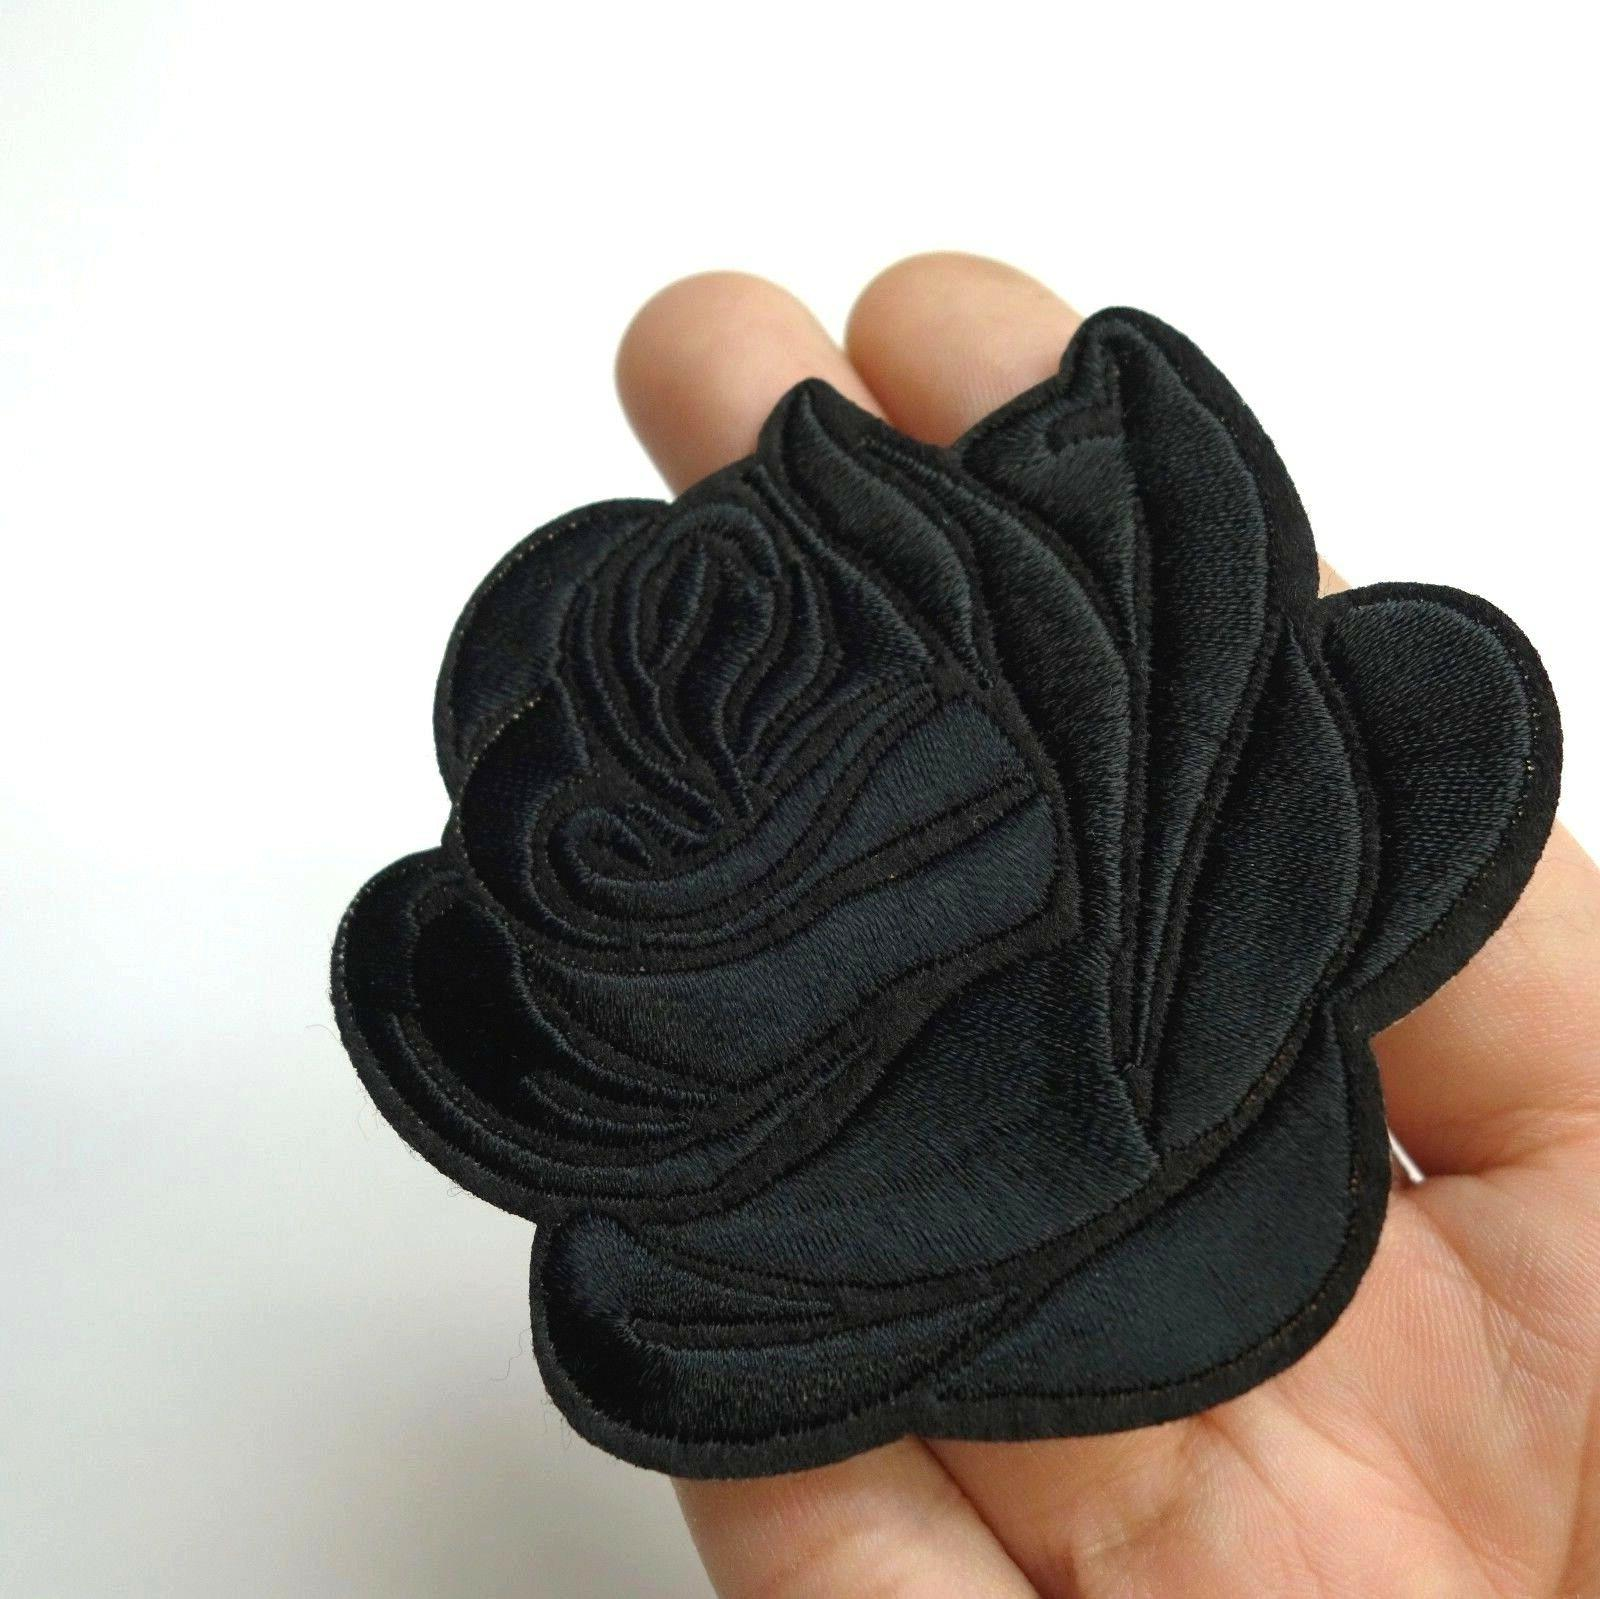 Black Rose Iron-On/Sew-On Embroidered Patch, Applique Motif